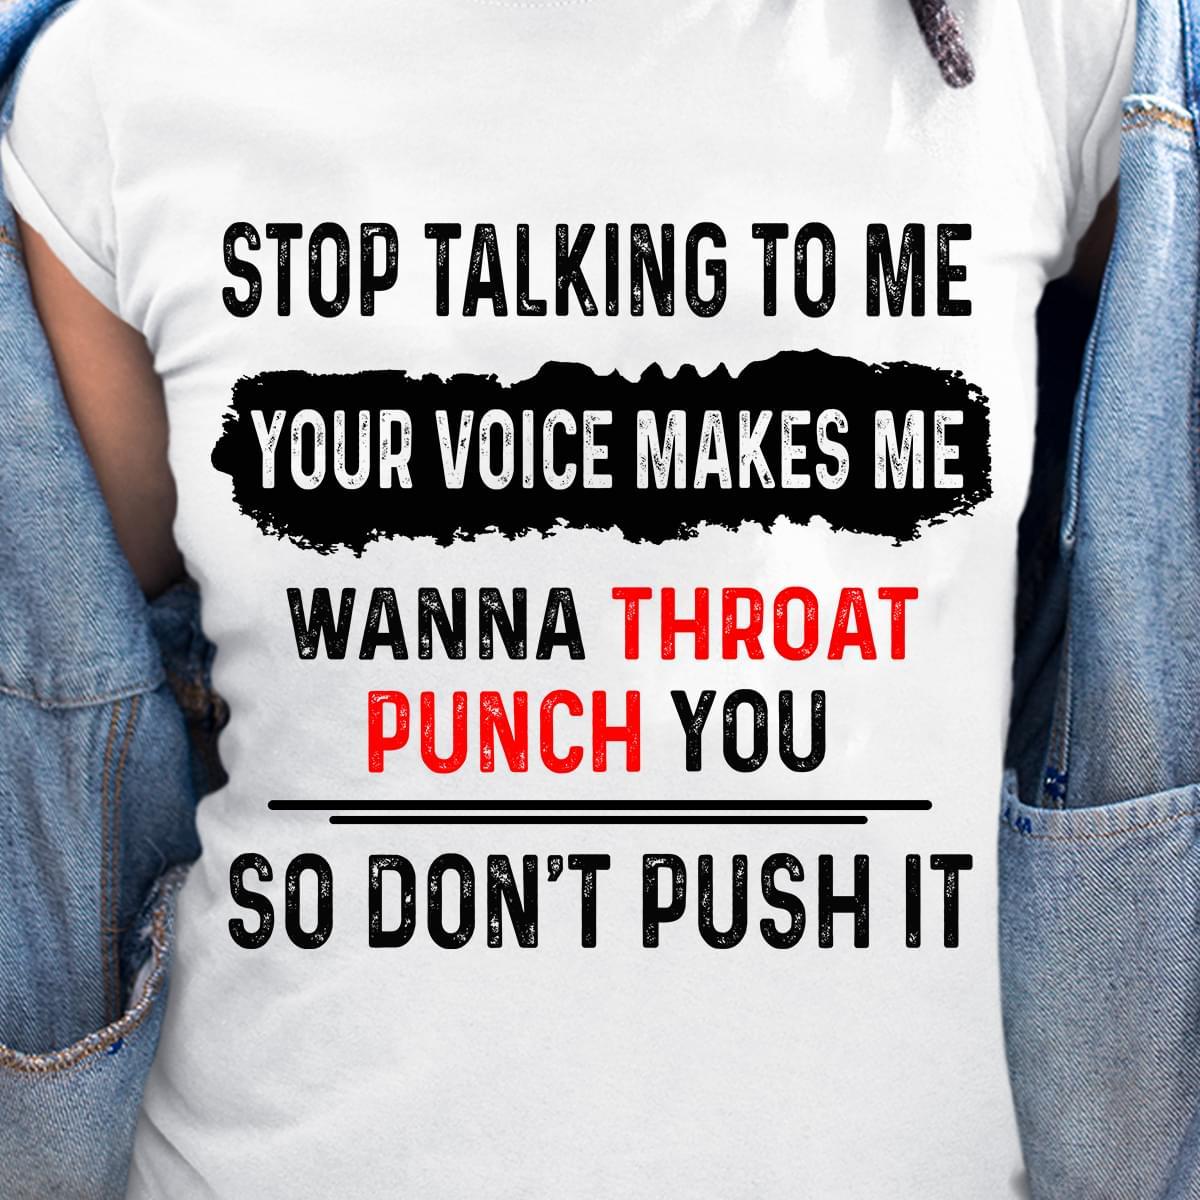 Stop Talking To Me Your Voice Makes Me Wanna Throat Punch You Dont Push It cotton t-shirt Hoodie Mug